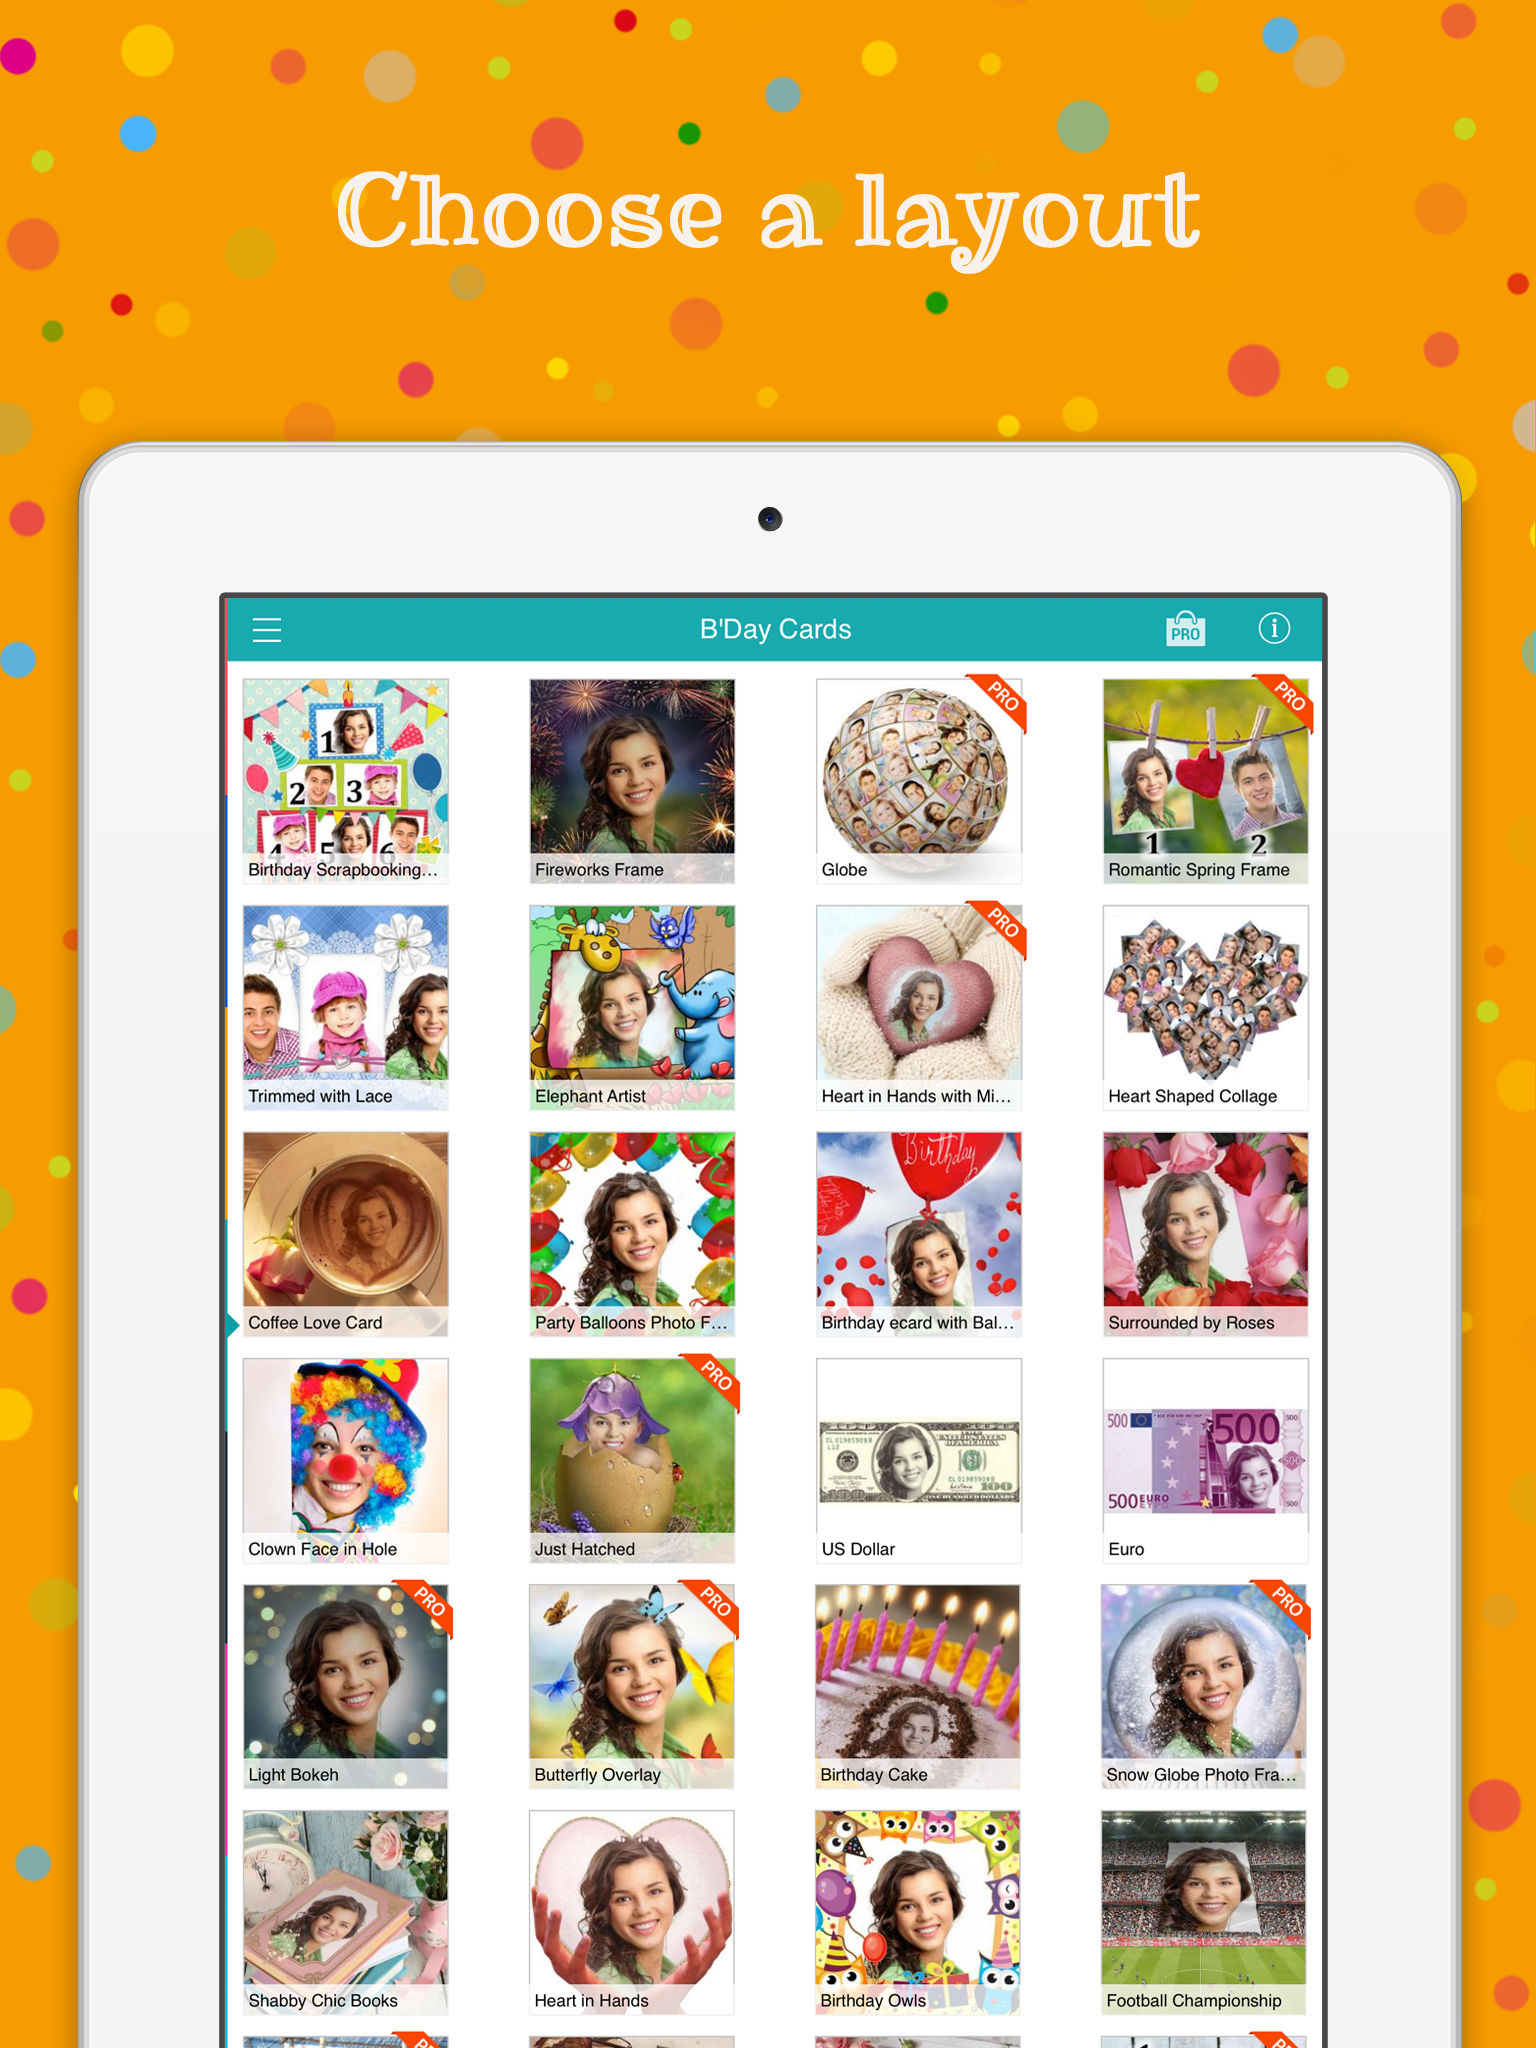 Birthday Cards Free happy birthday photo frame gift cards – Face in Hole Birthday Cards